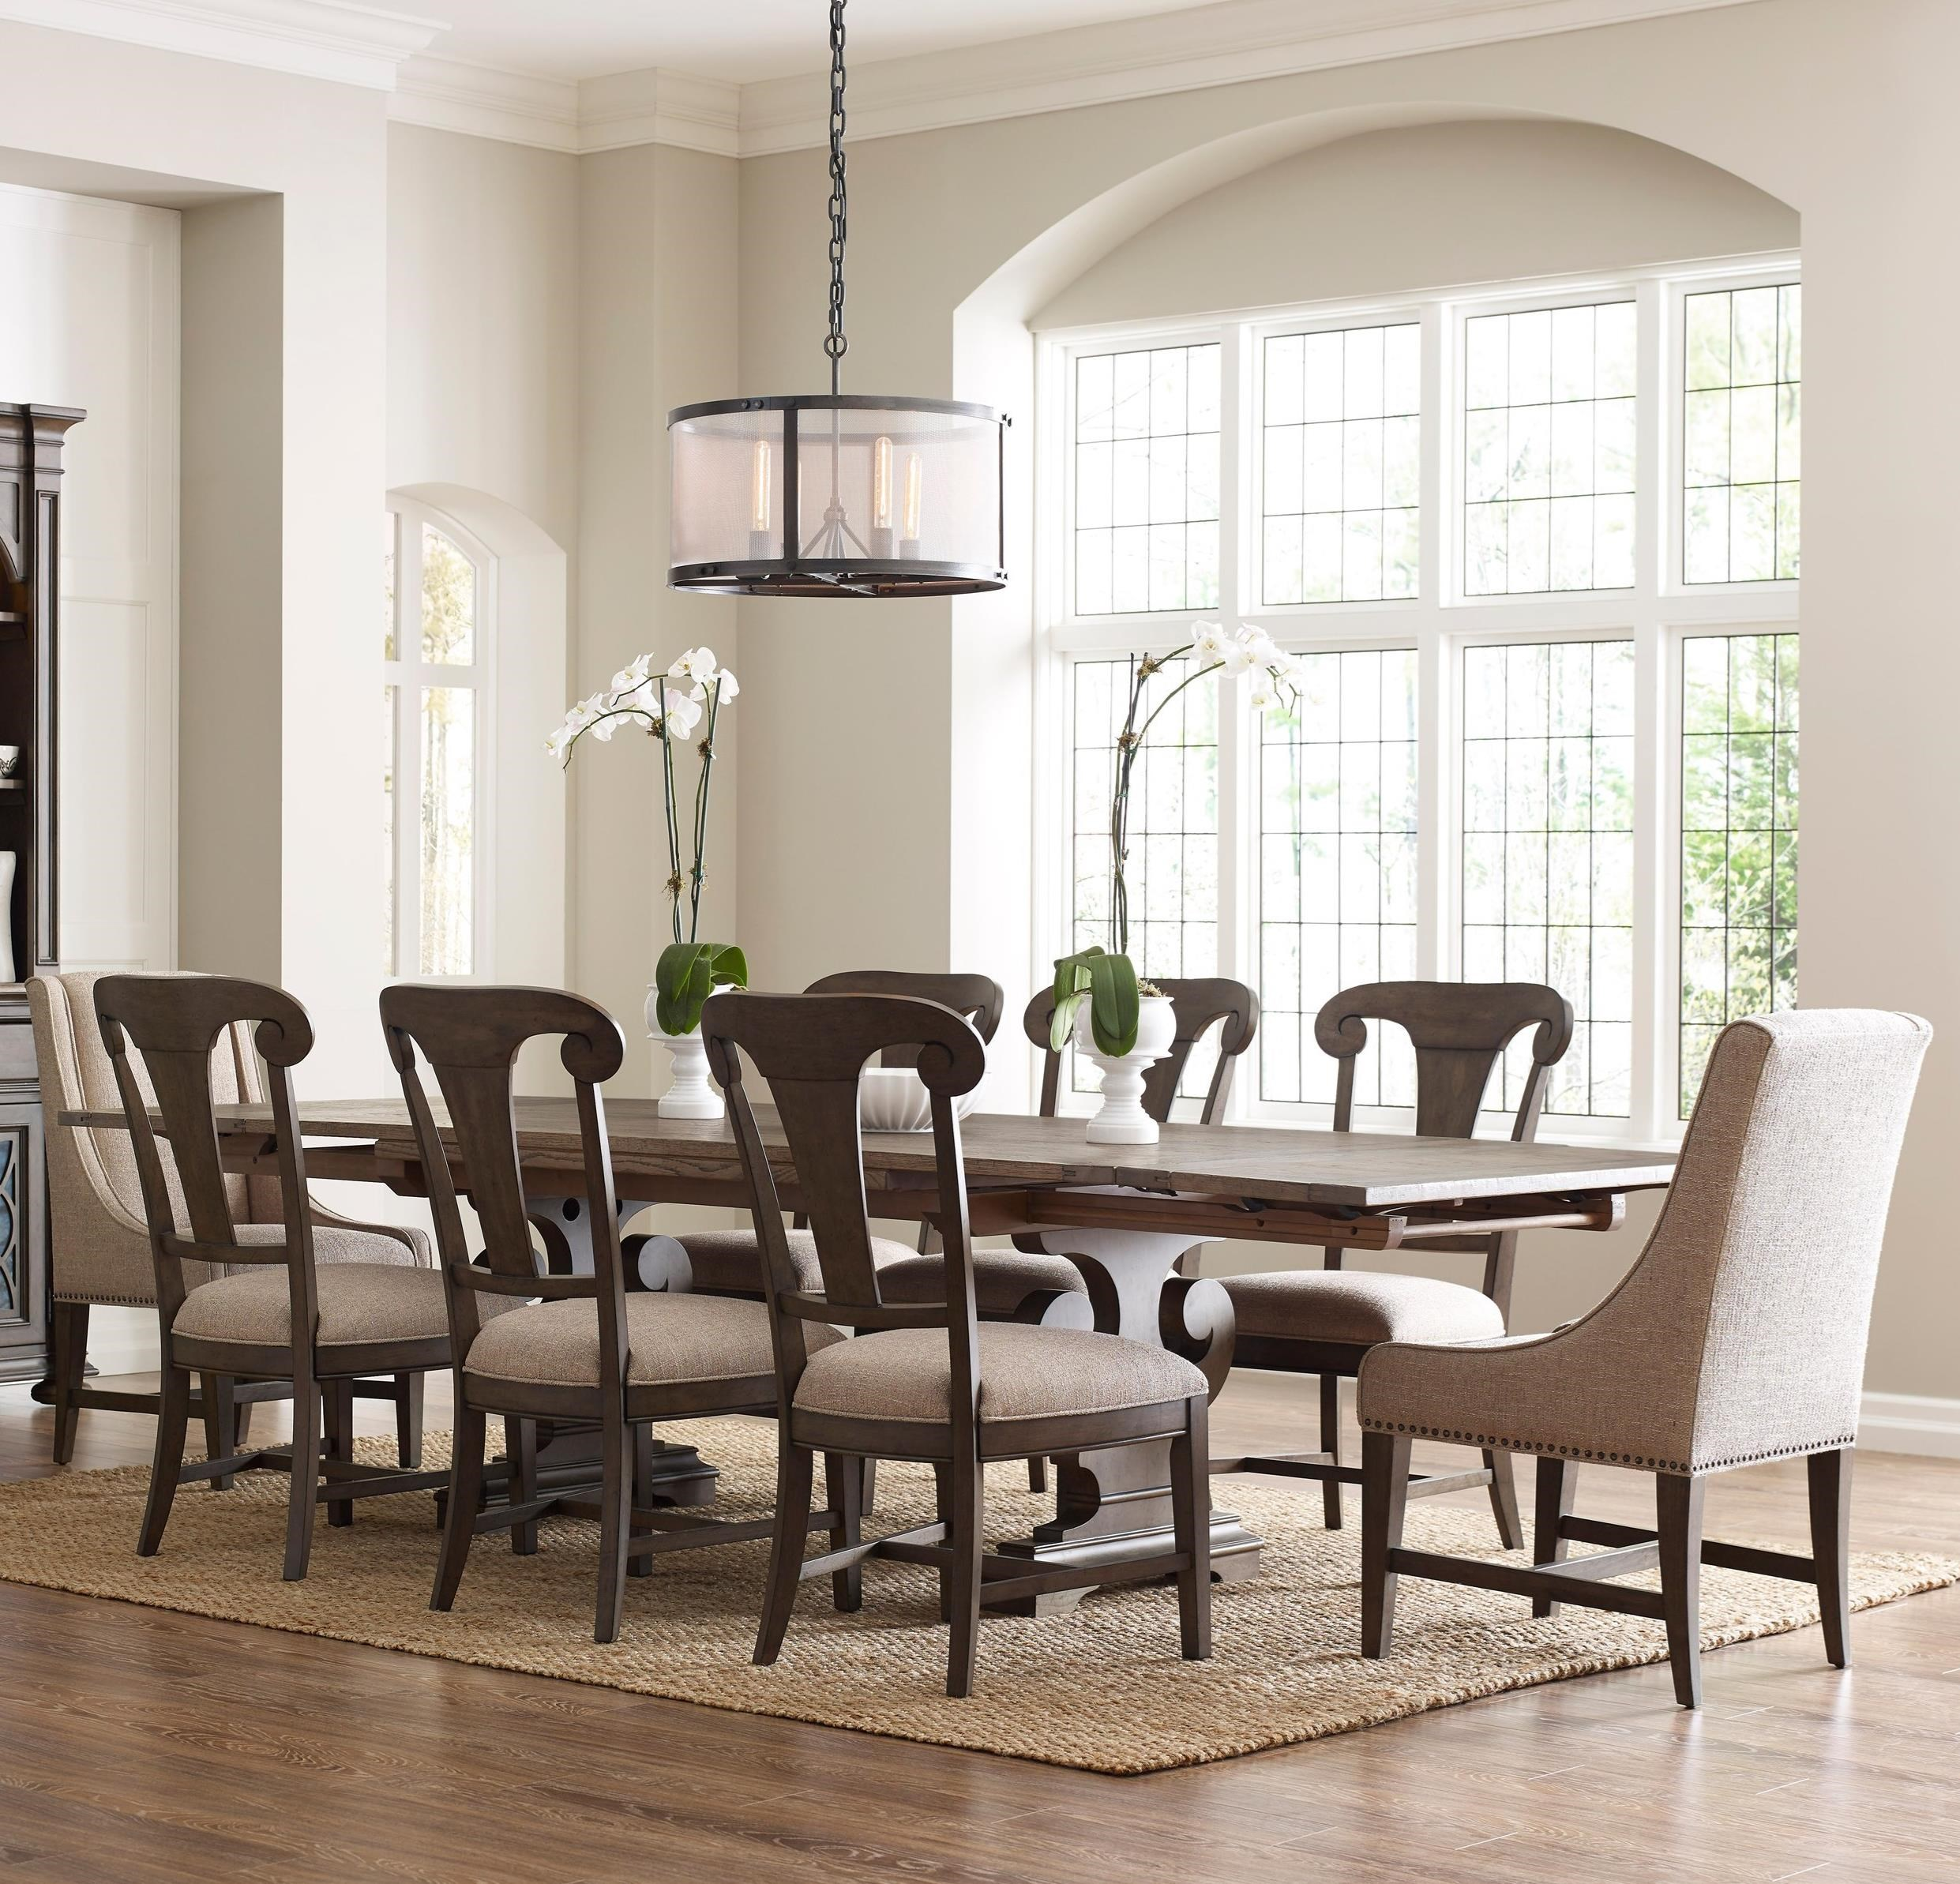 Kincaid Furniture Greyson Nine Piece Refectory Table Dining Set with ...